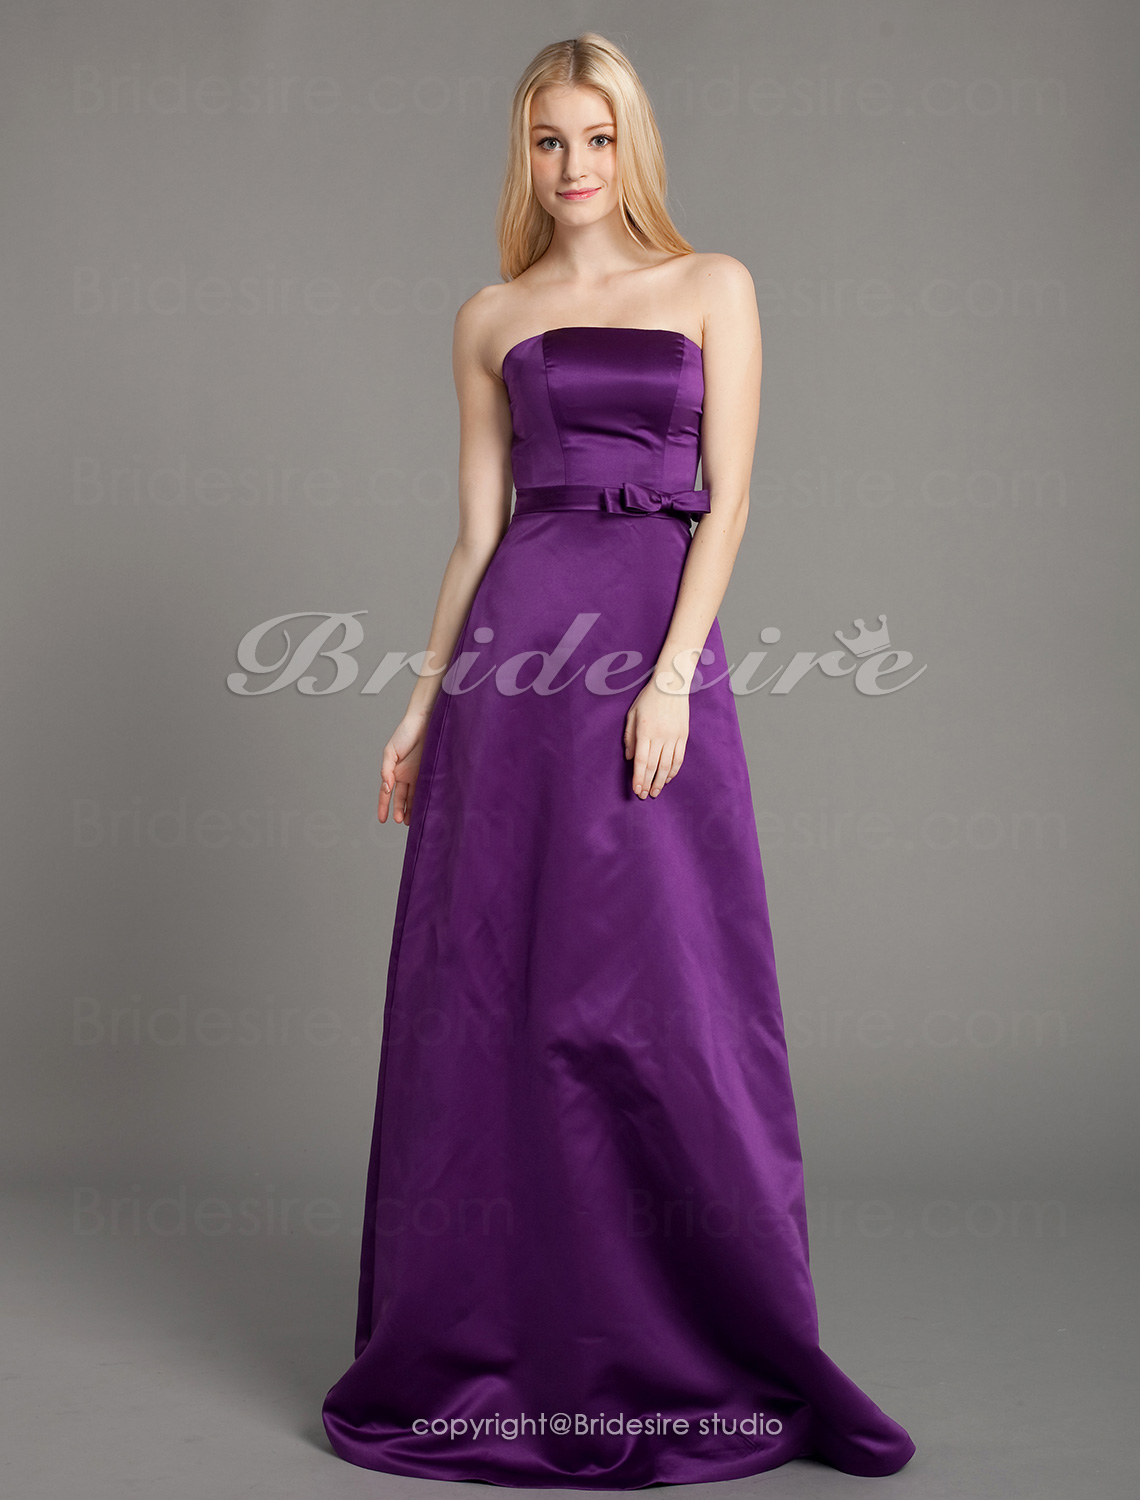 guaina/ Column elasticizzato Raso Raso terra Senza Spalline Bridesmaid/ Wedding Party vestito